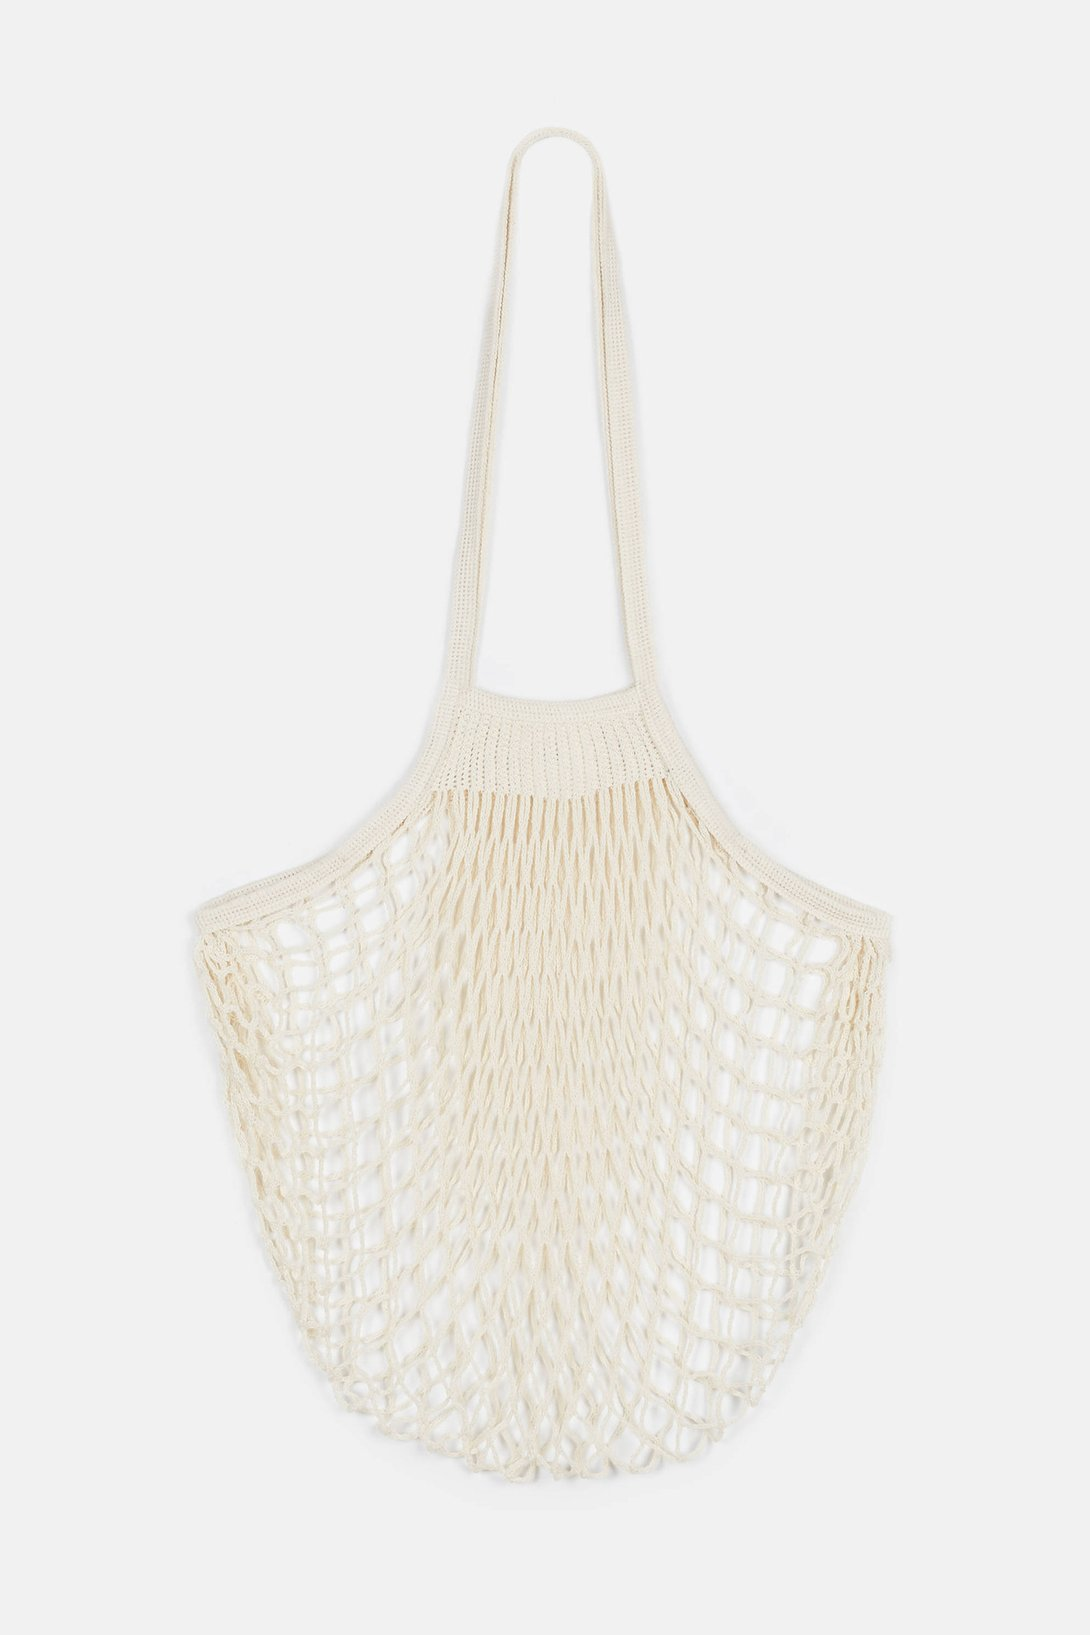 """Filt Large Net Bag - Natural - This cotton, machine-washable bag, originally made for fisherman are called simply, """"filet,"""" in France. Eventually, the bags gained a wider appeal as a light and flexible tote that can be used for everything from groceries to laundry. We use one to haul bunches of celery from Trader Joe's to our apartments so we can make our daily portions of celery juice. We've mentioned it a time or two, but just in case you weren't paying attention, read about it here.$22"""